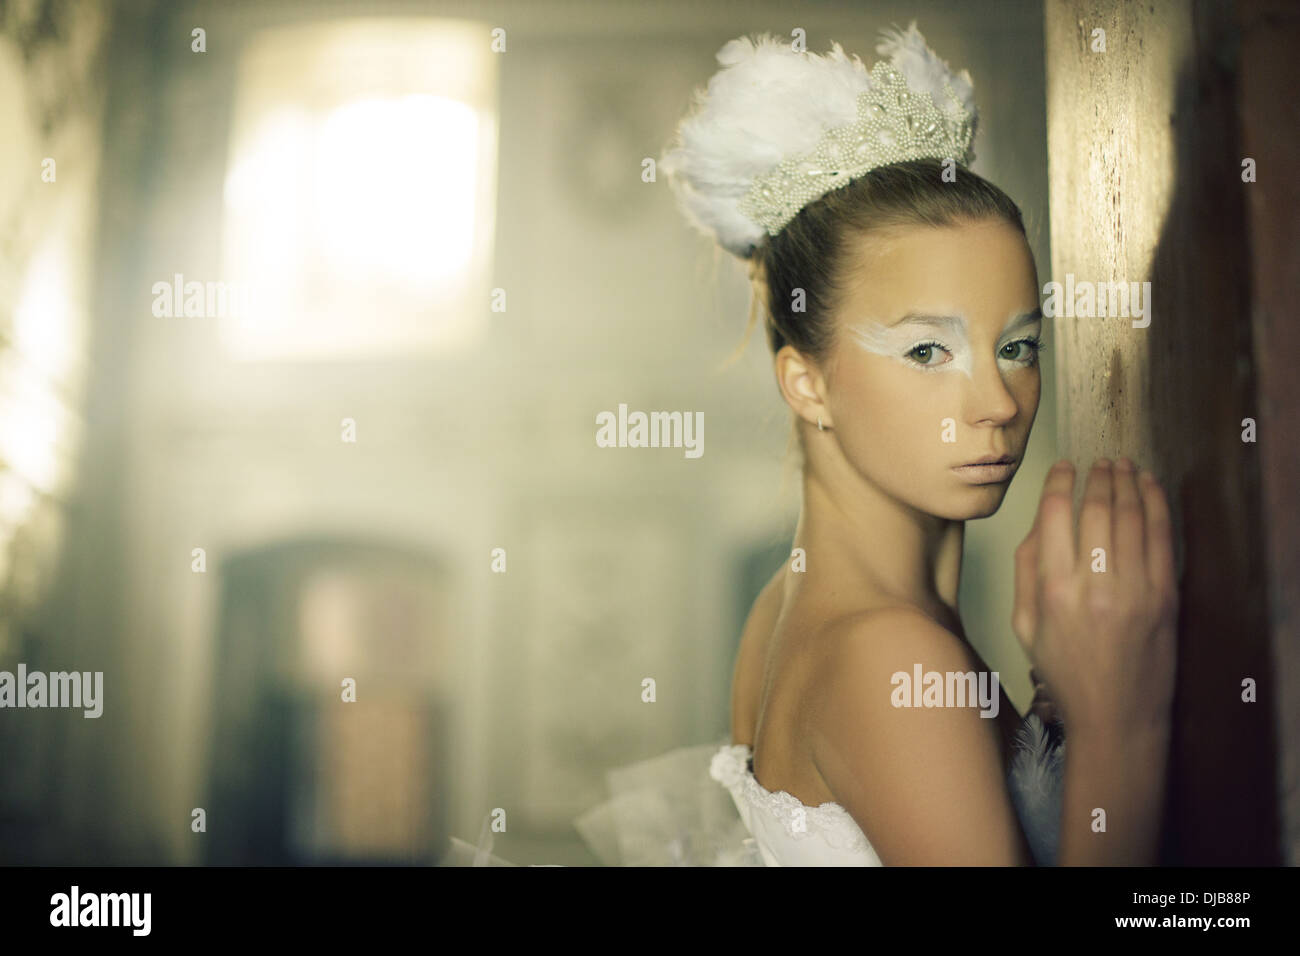 Grand portrait de la danseuse de ballet swan Photo Stock